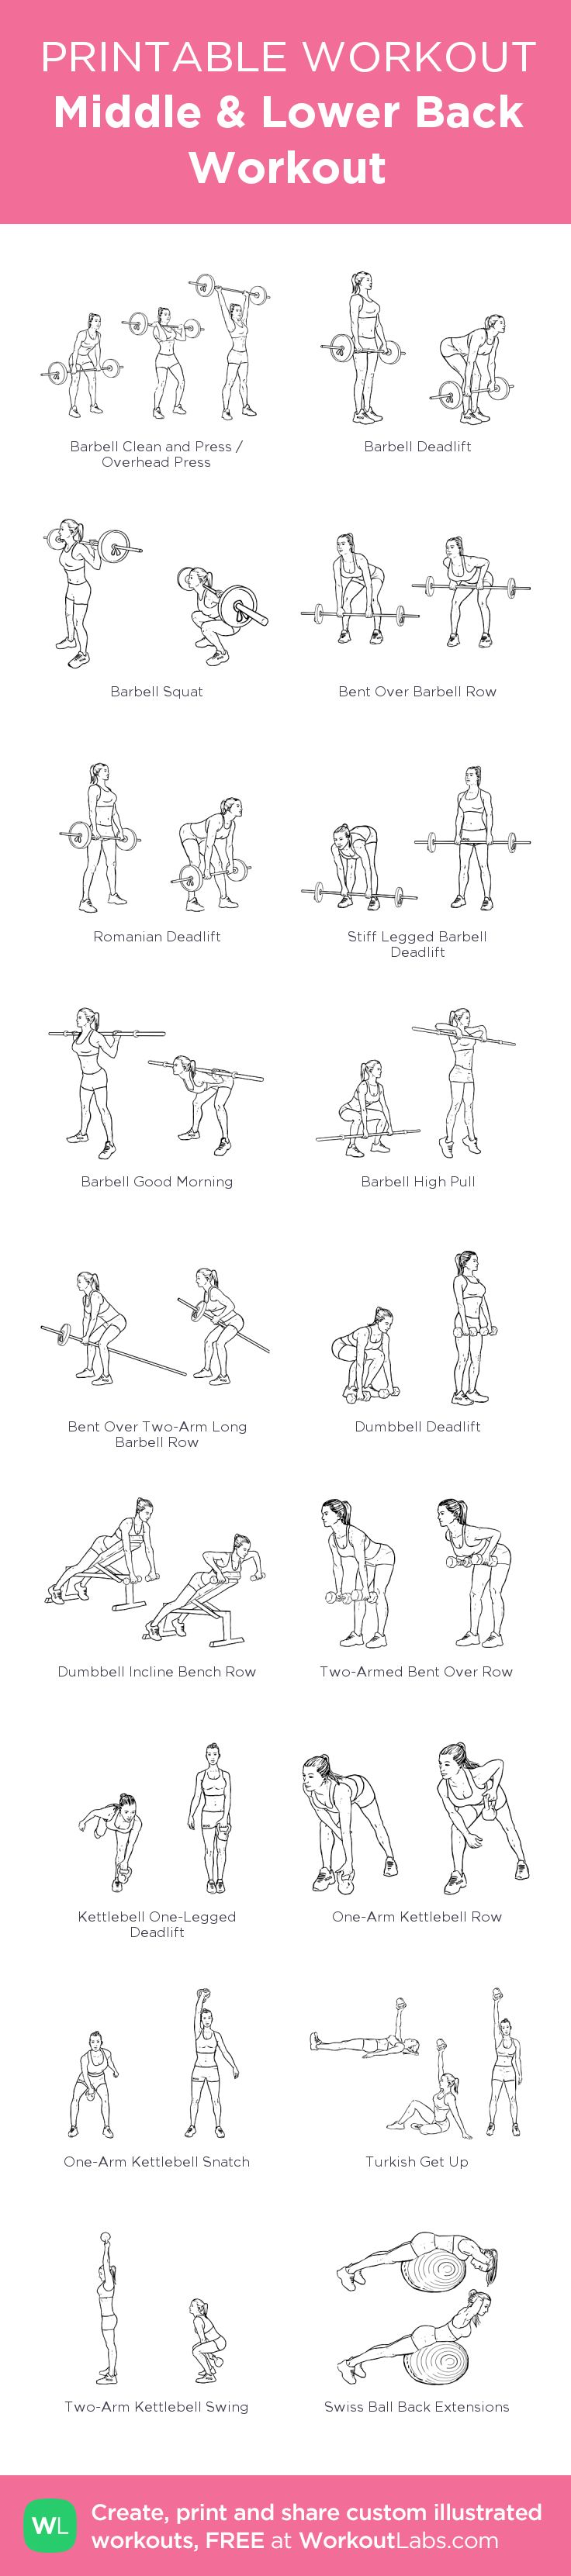 Middle & Lower Back Workout : my visual workout created at WorkoutLabs.com • Click through to customize and download as a FREE PDF! #customworkout